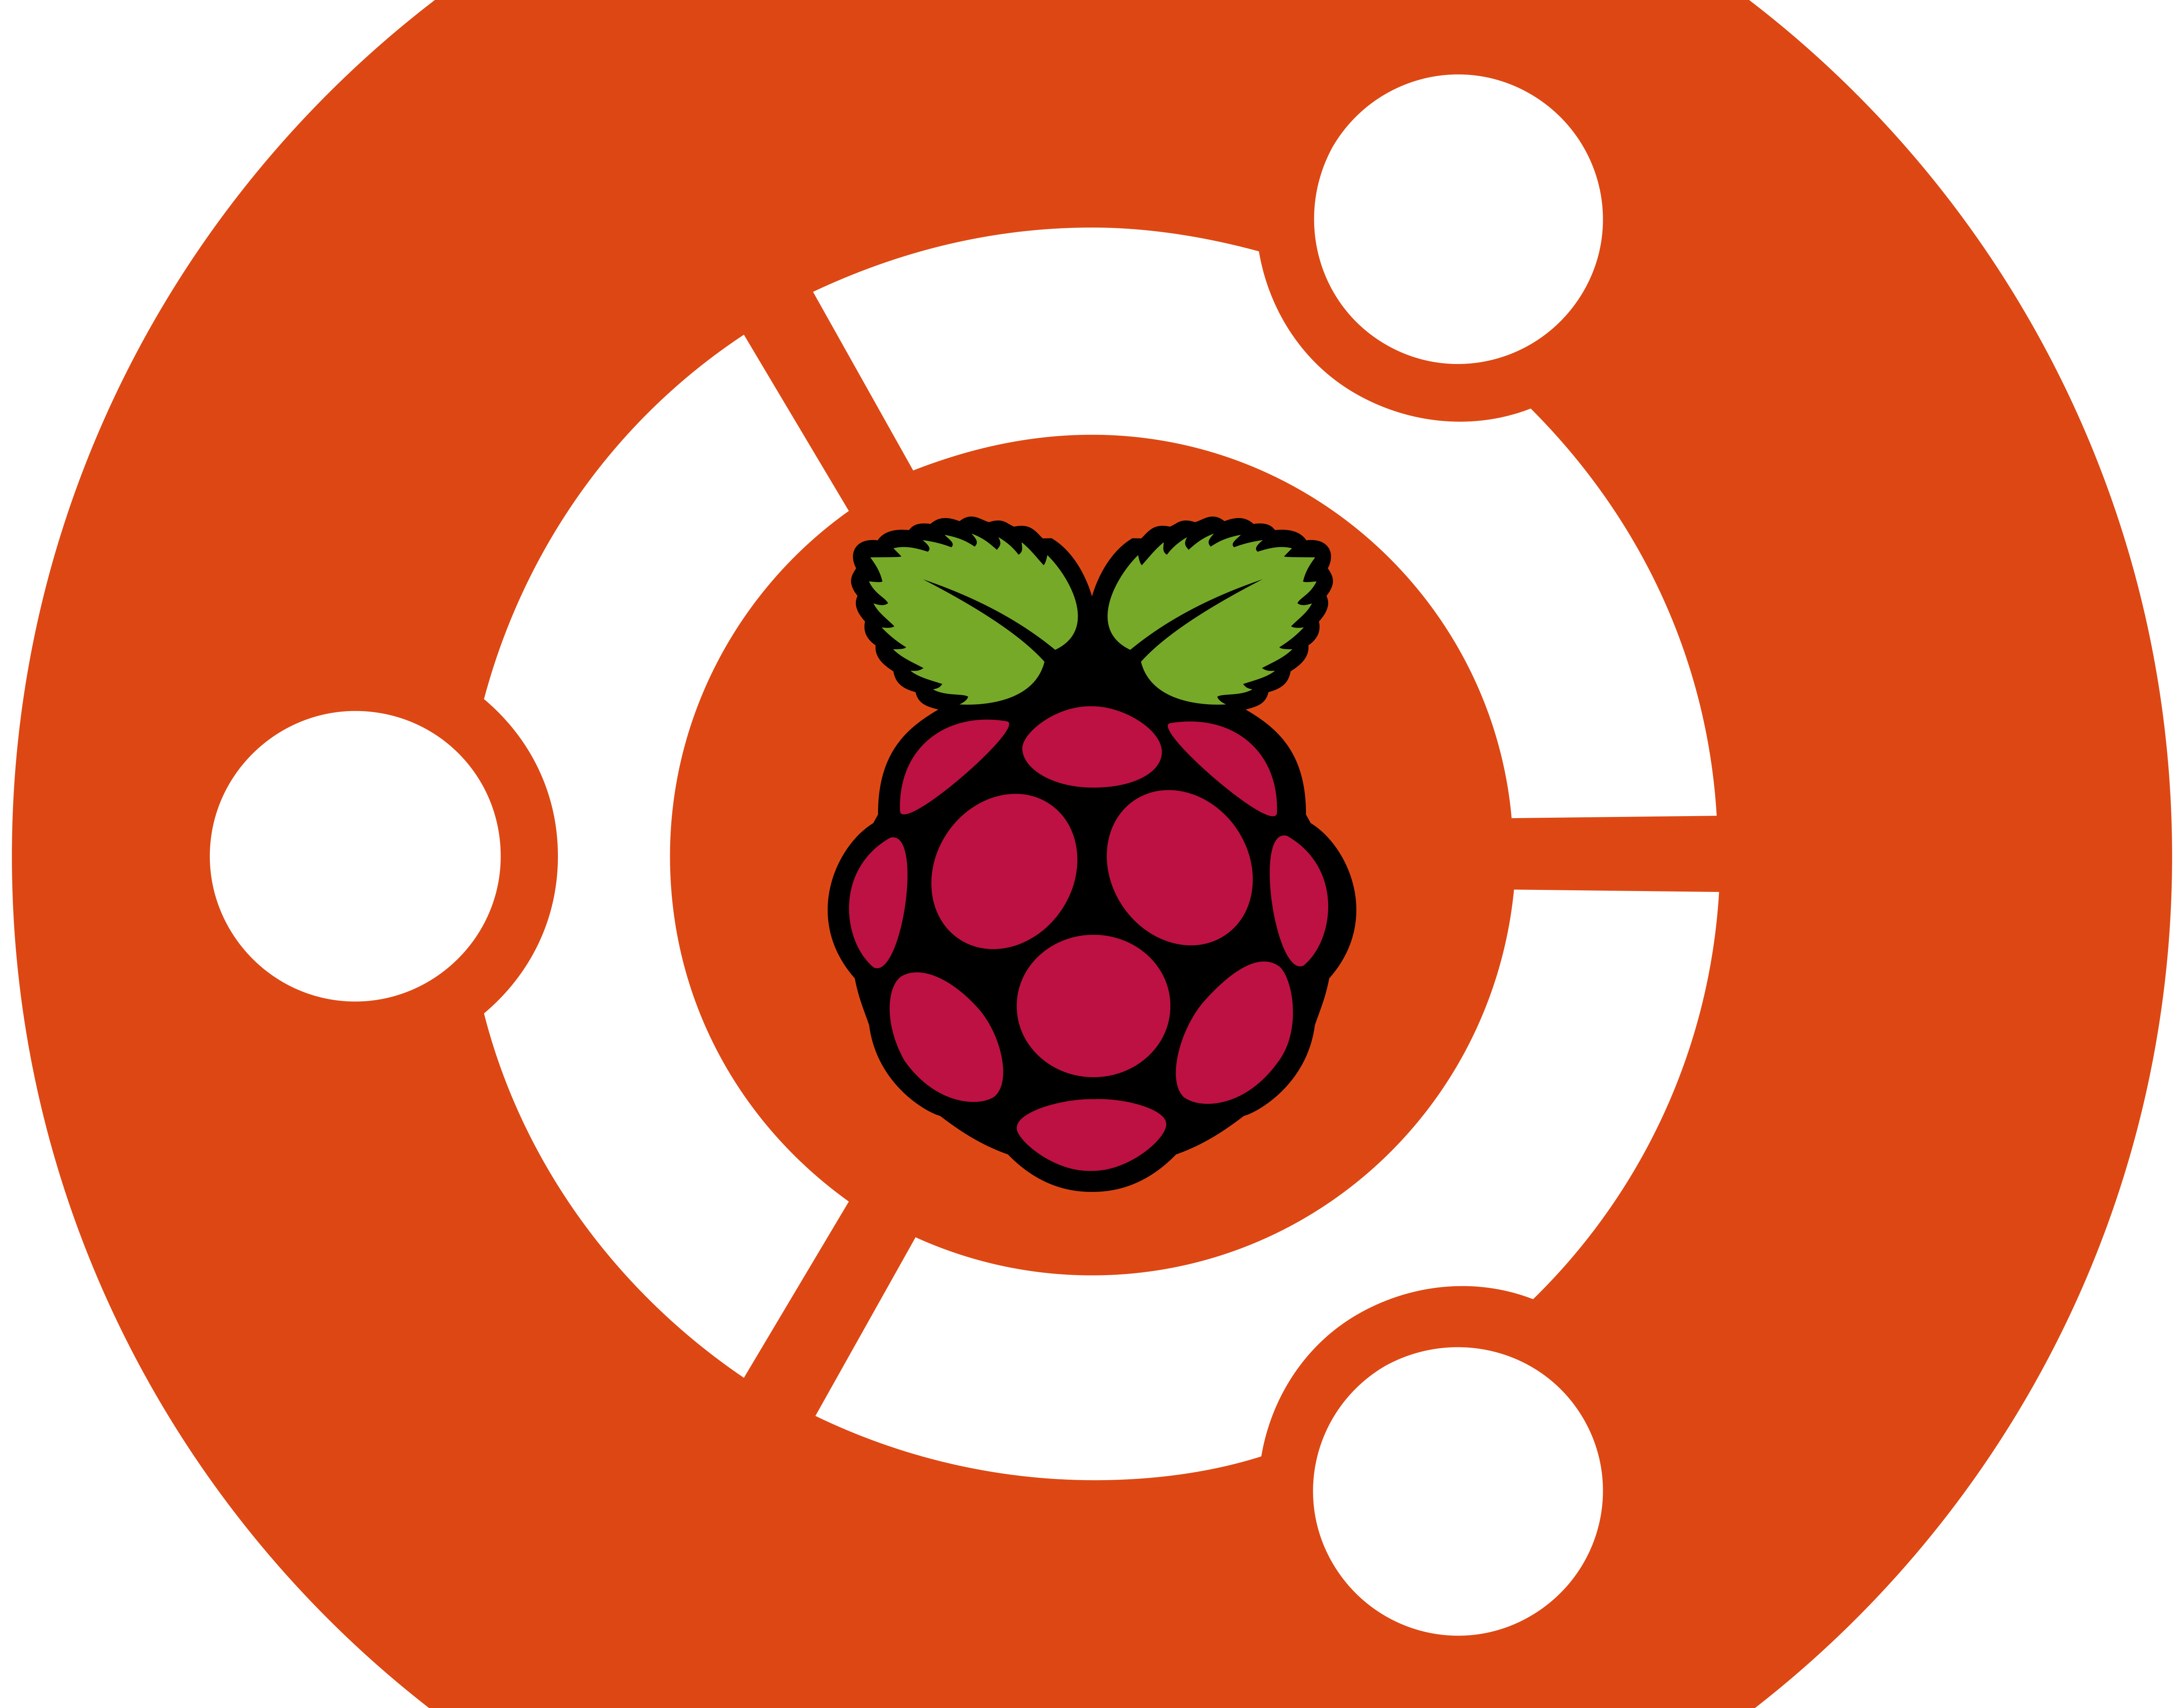 David Xie's Website - Install Ubuntu on Raspberry Pi on flash drive